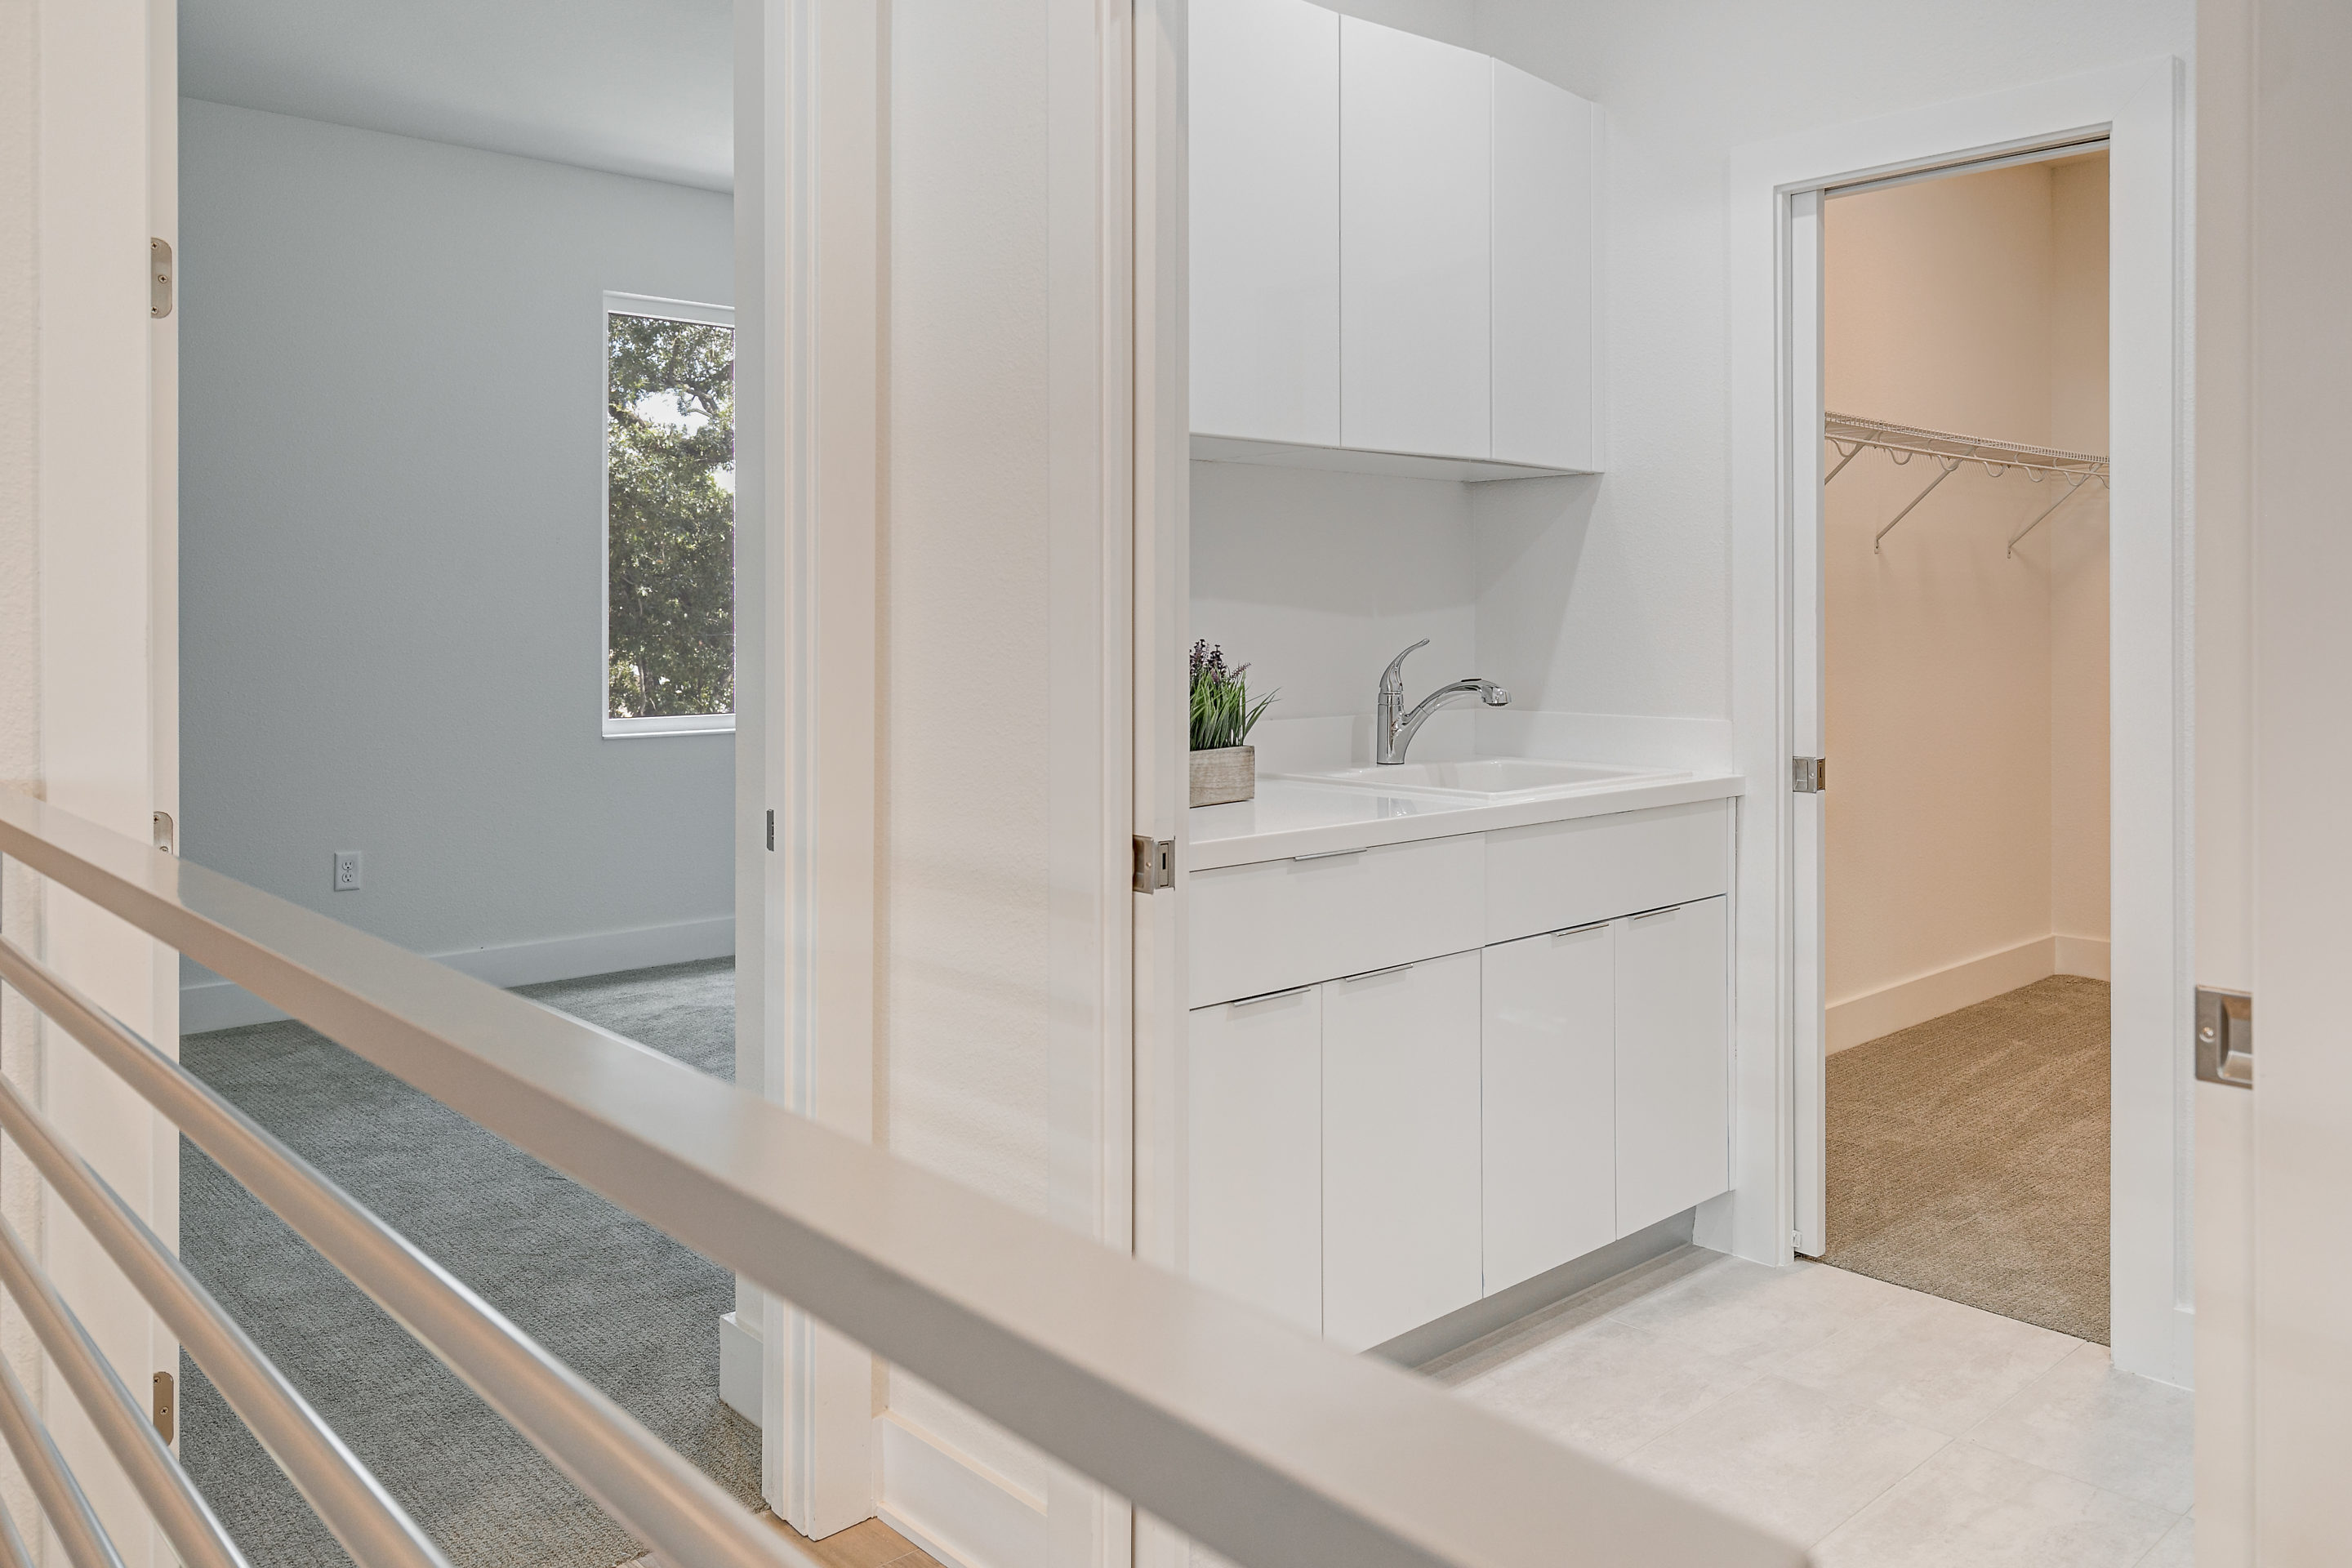 Laundry Room with Connection to Master Bedroom